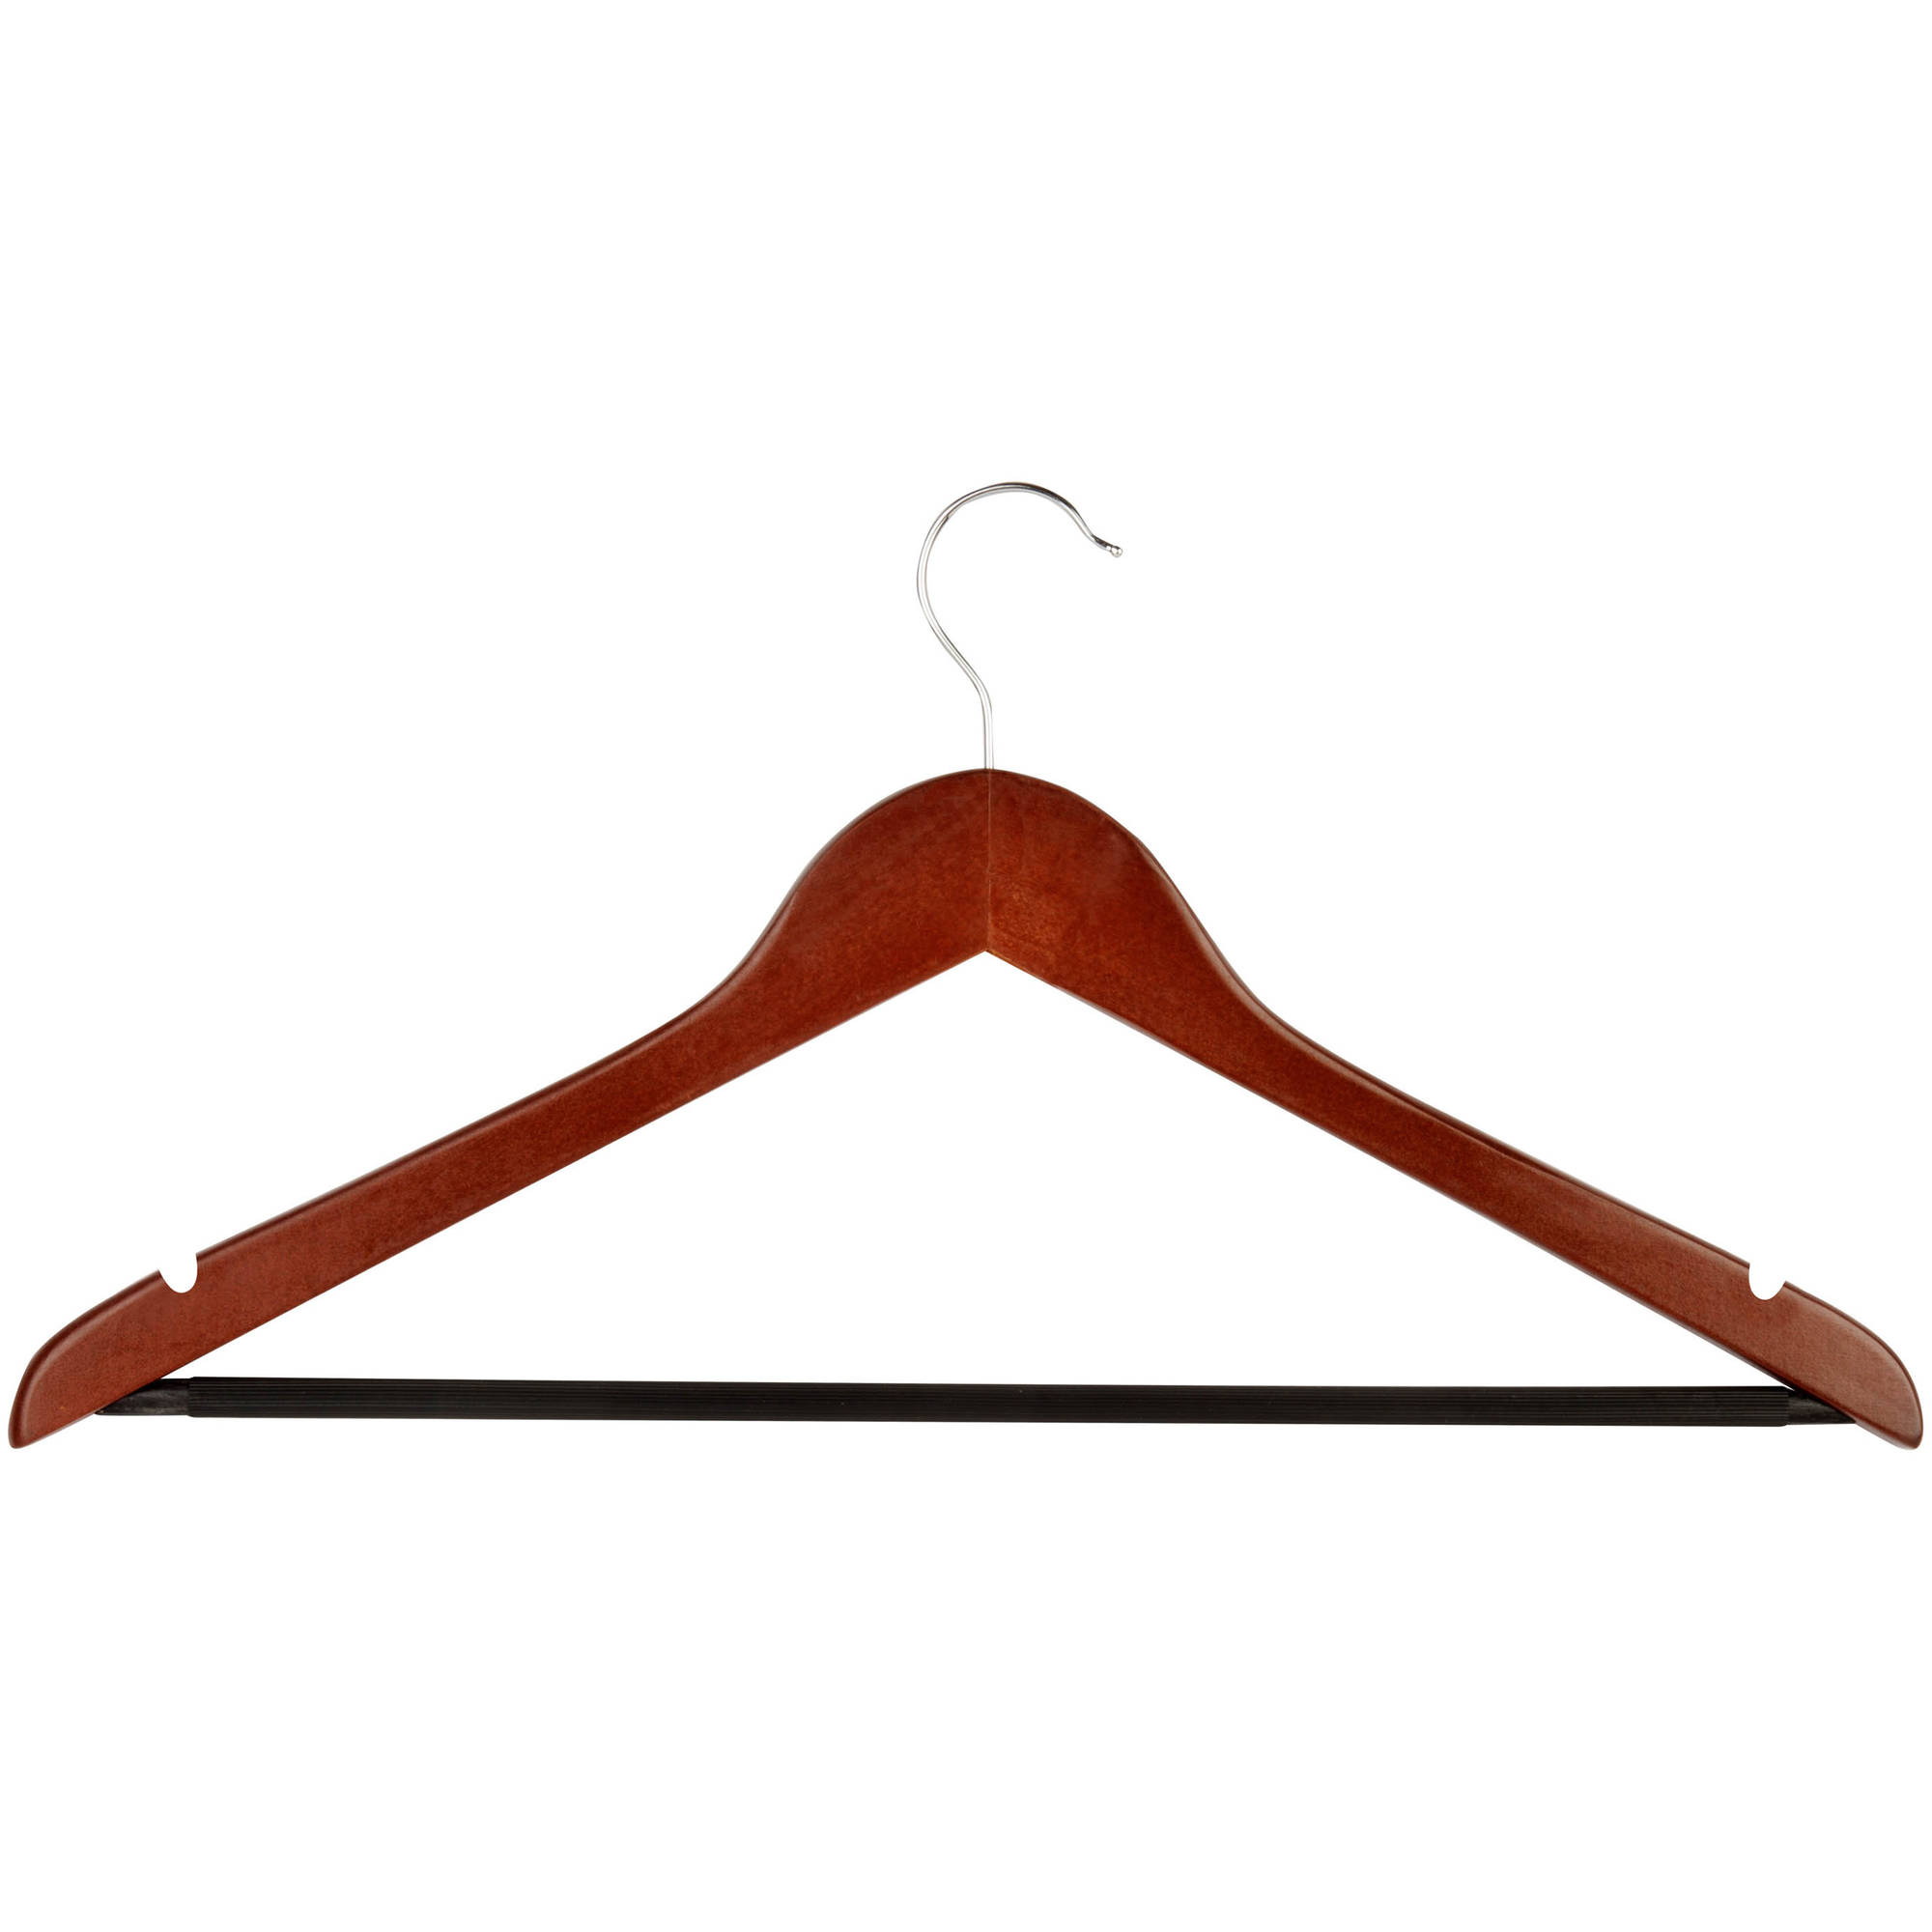 Honey Can Do Wooden Suit Hangers, Cherry, 24pk